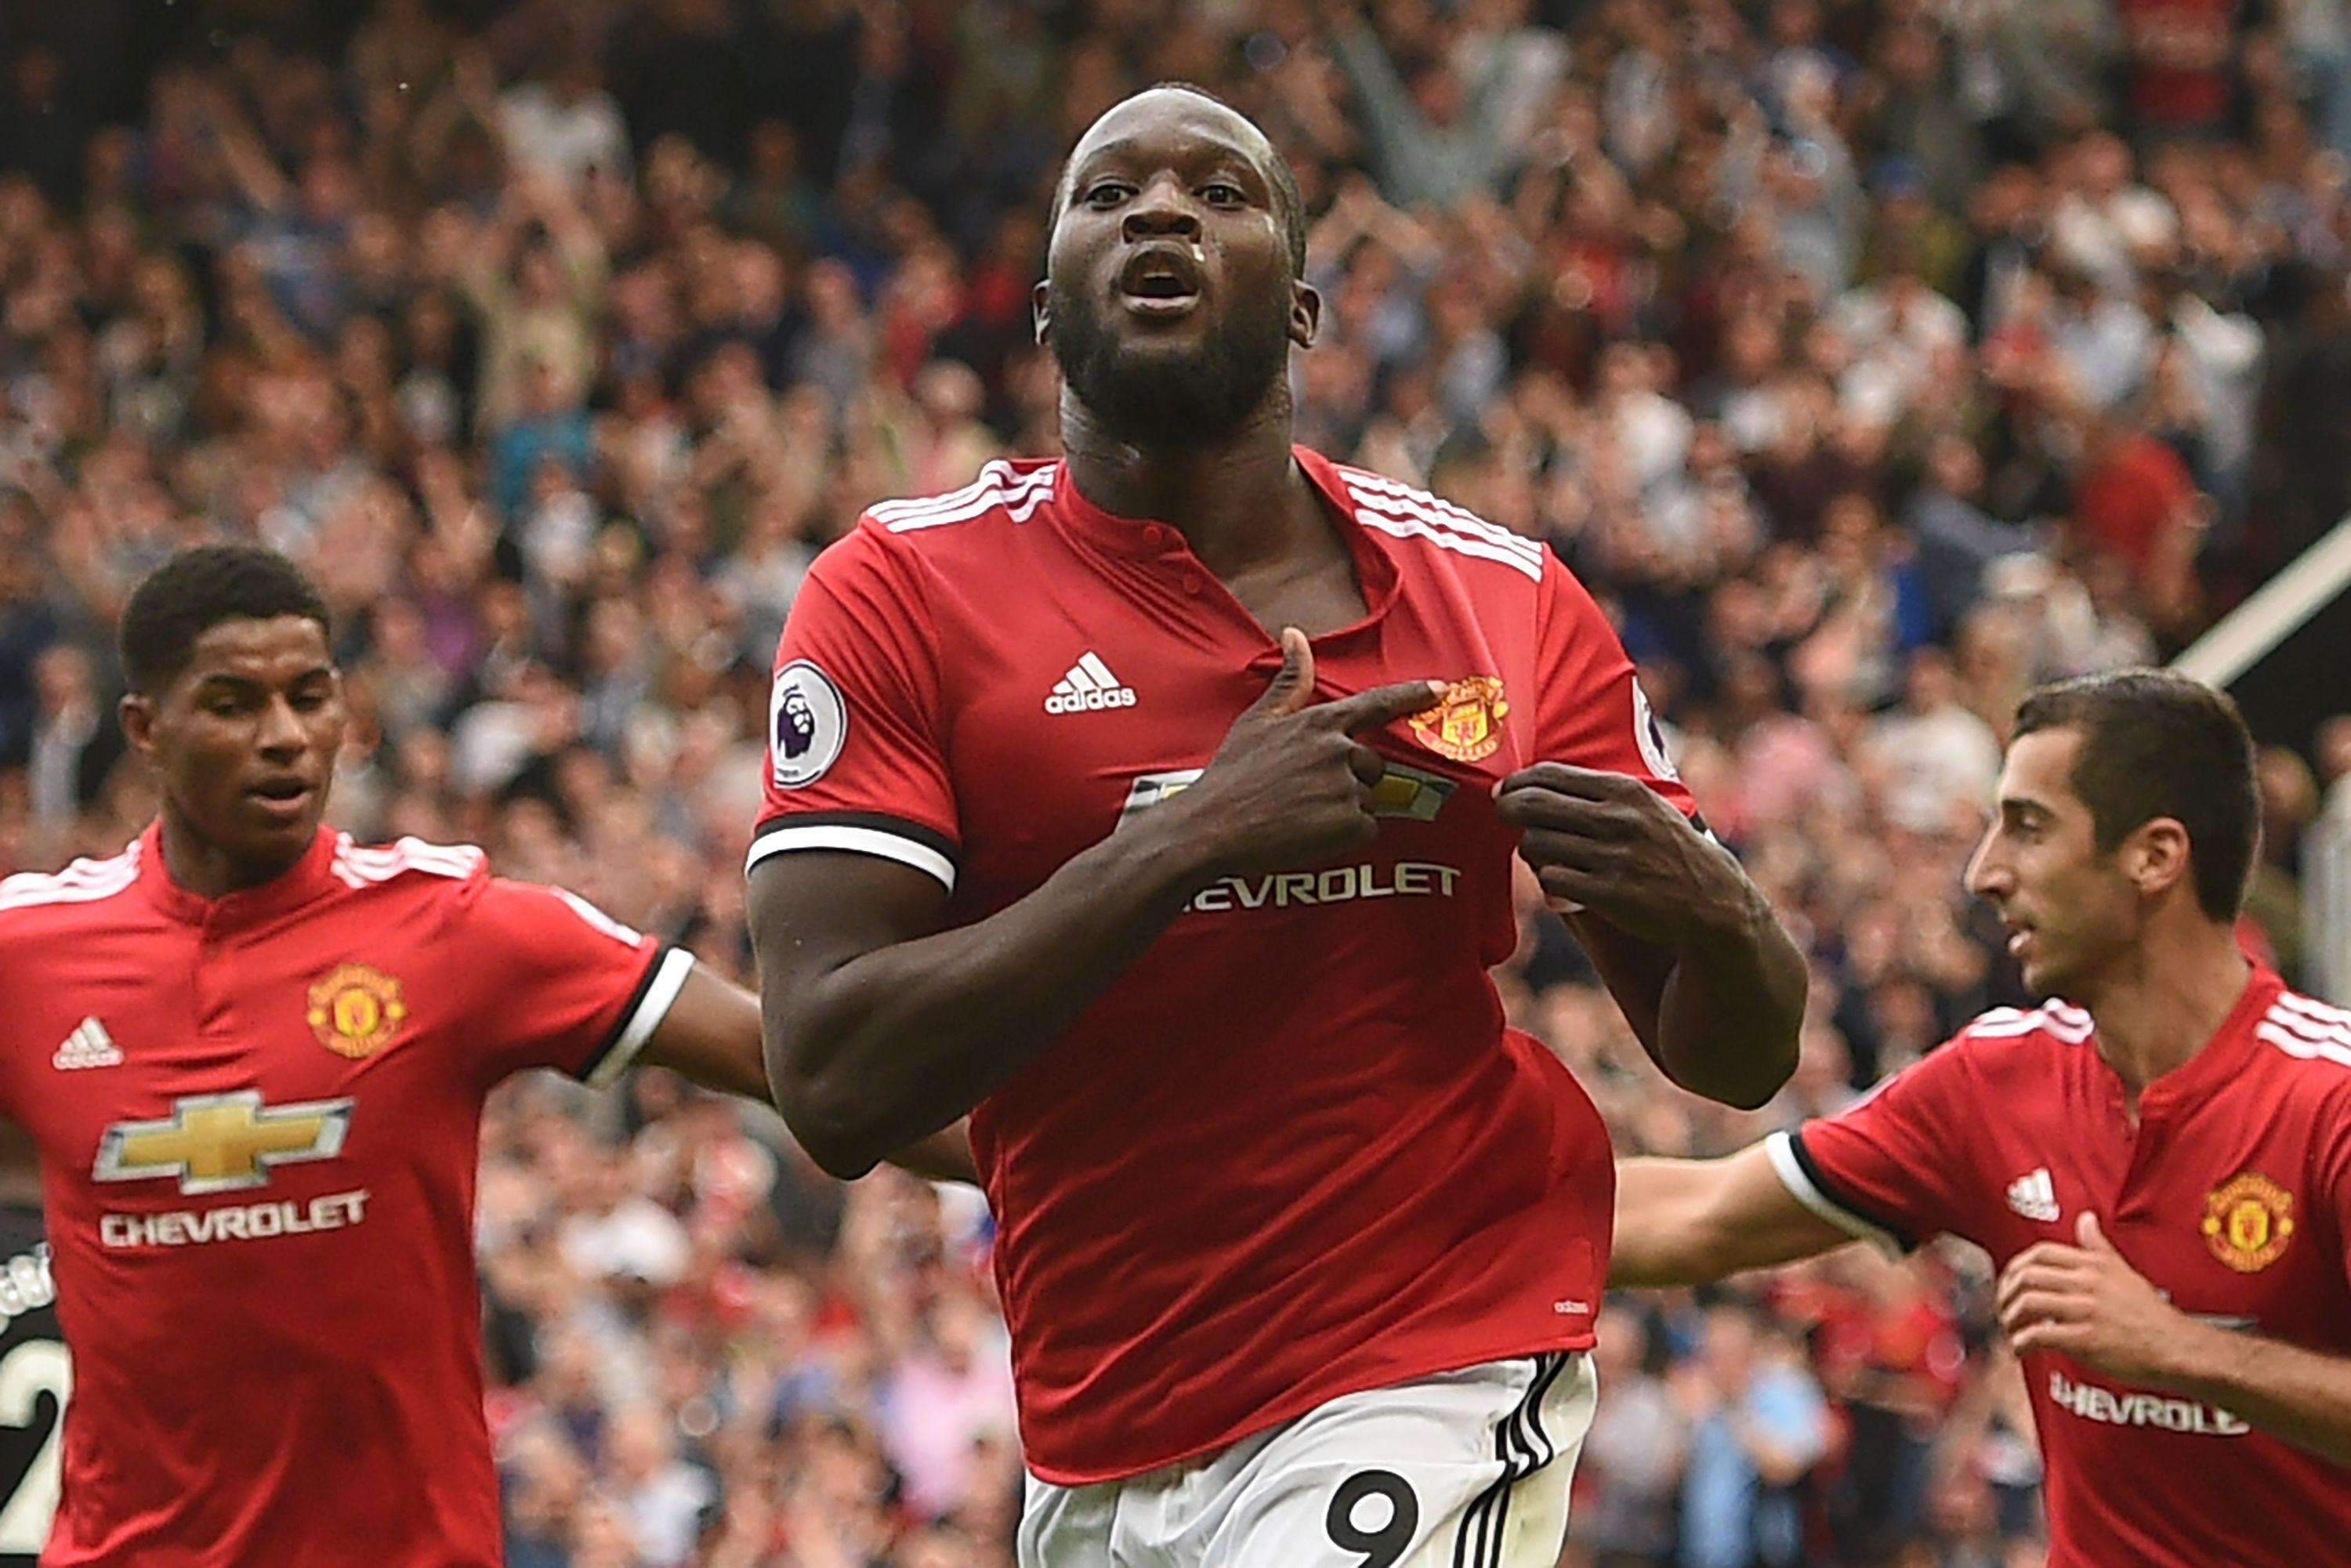 Romelu Lukaku points to the Manchester united badge after scoring against West Ham